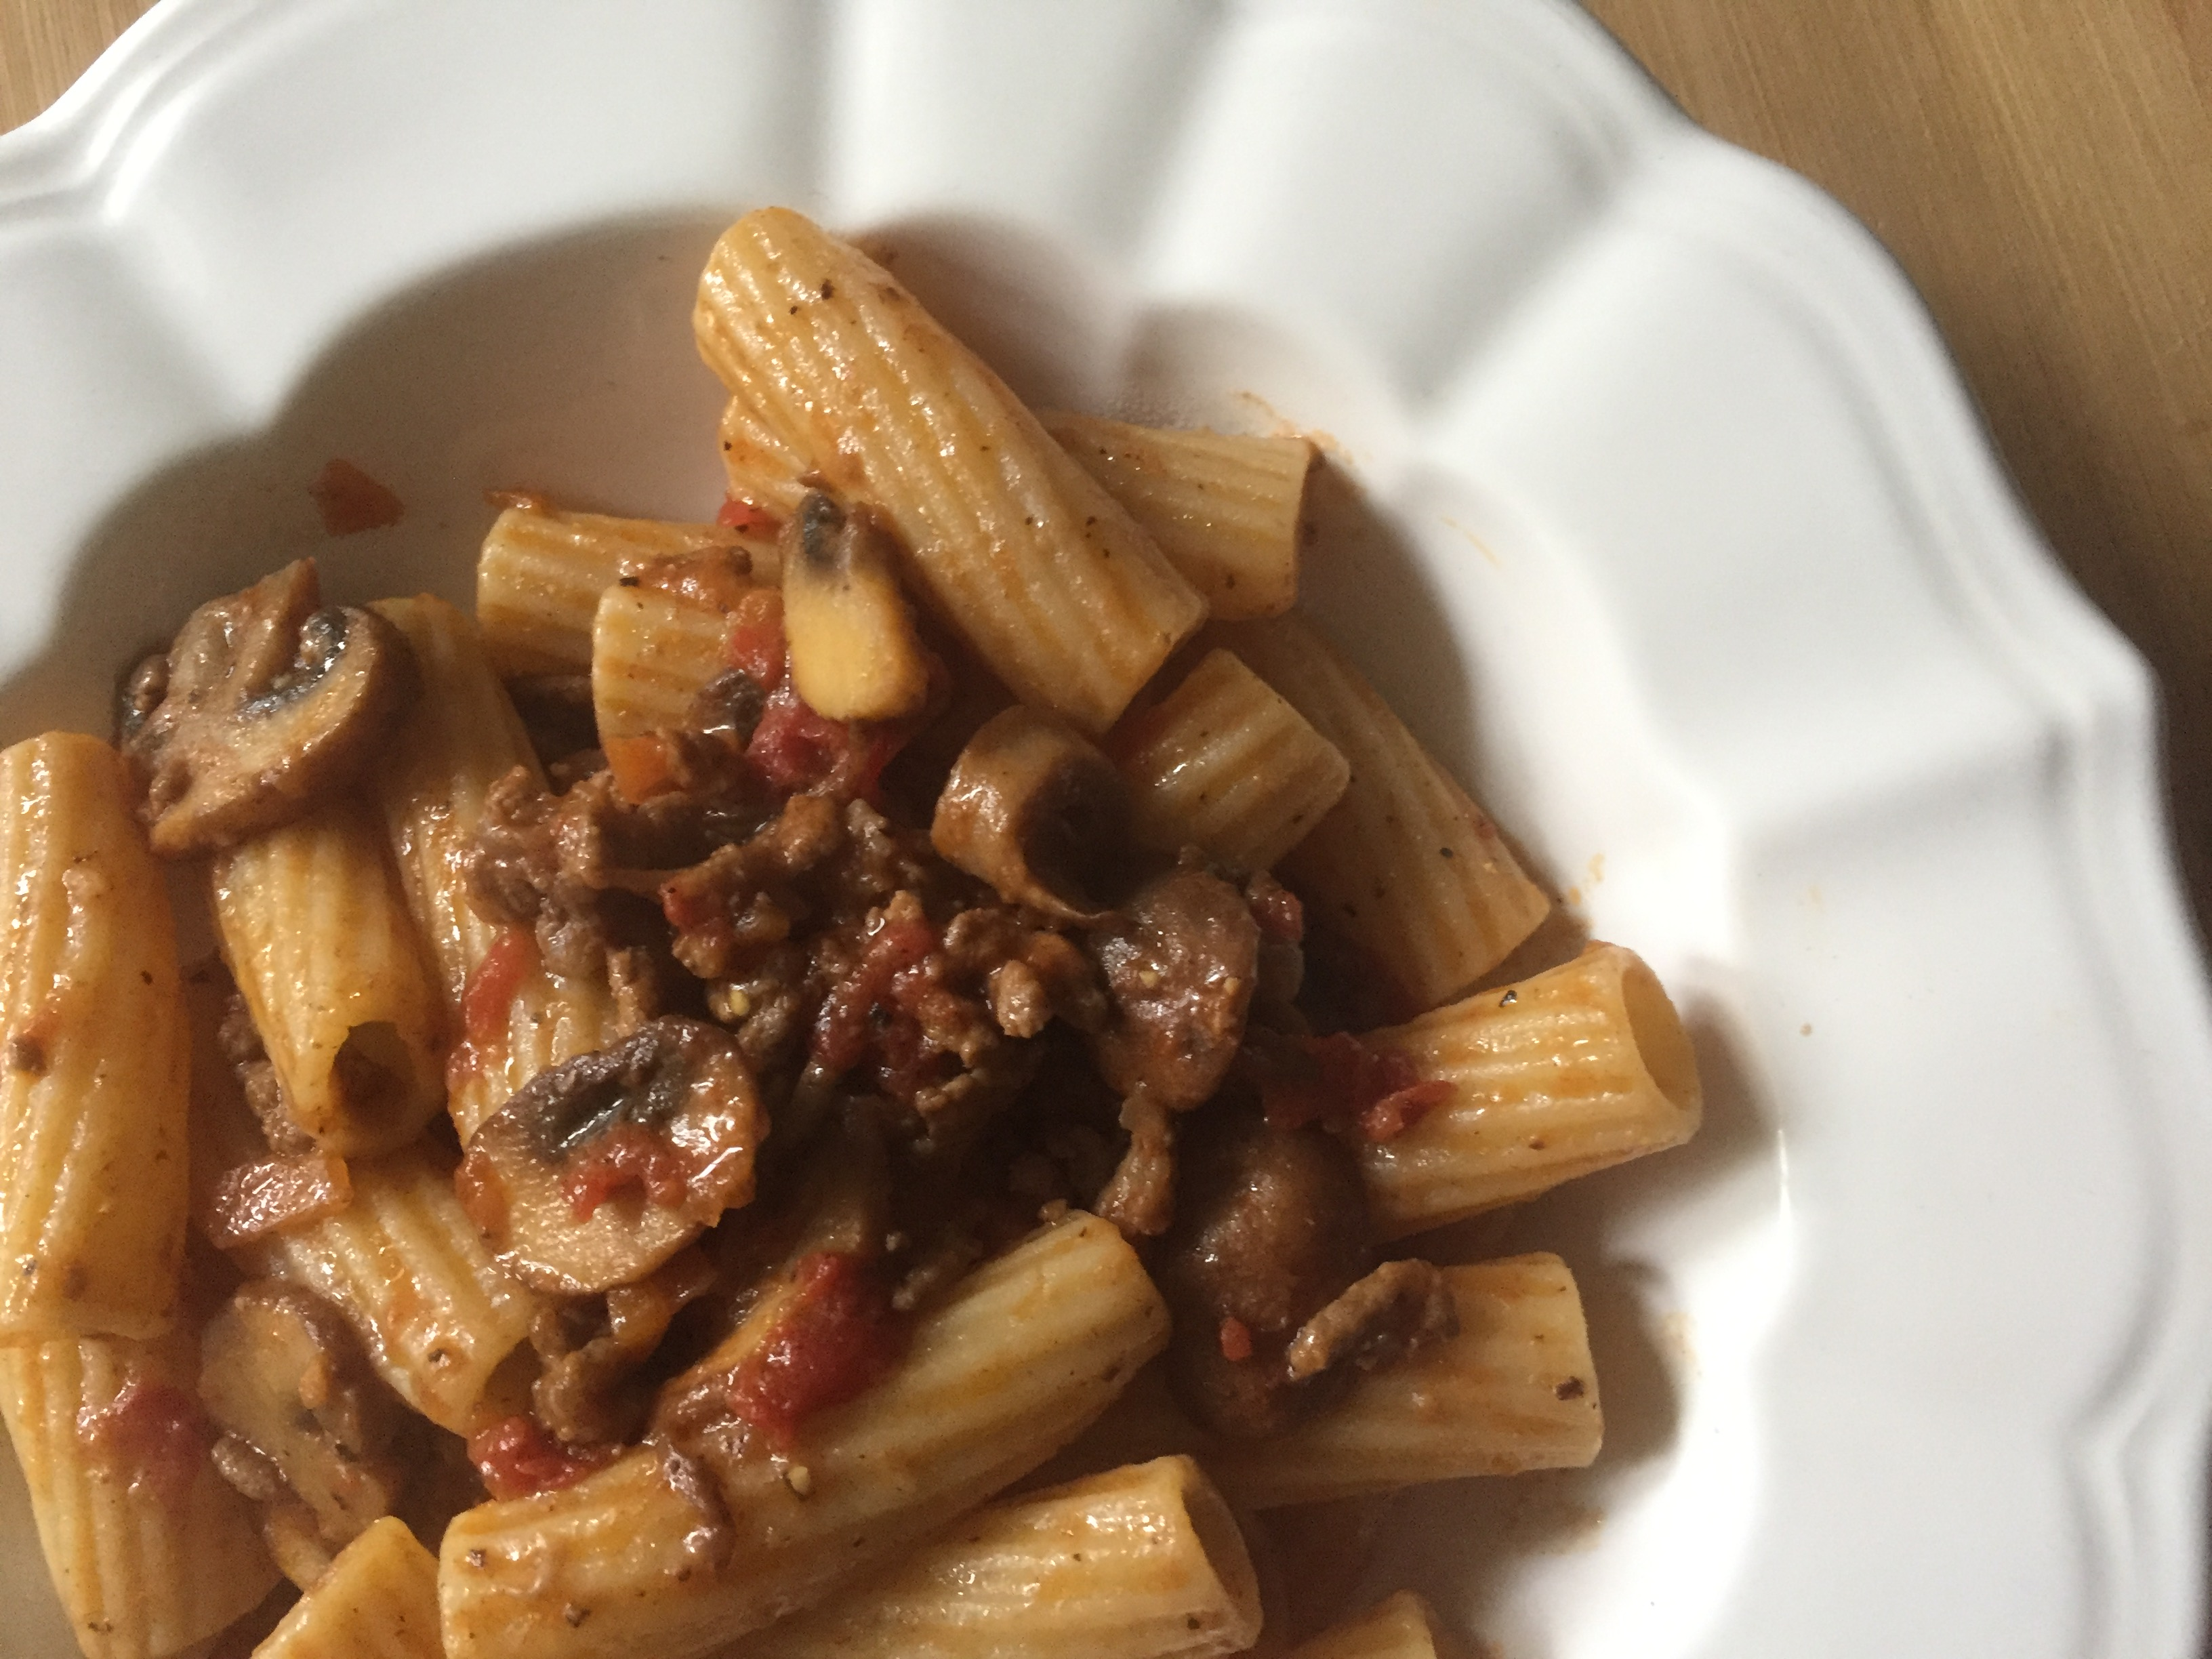 Semi-wholewheat rigatoni with mushrooms ragu' (bolognese sauce)